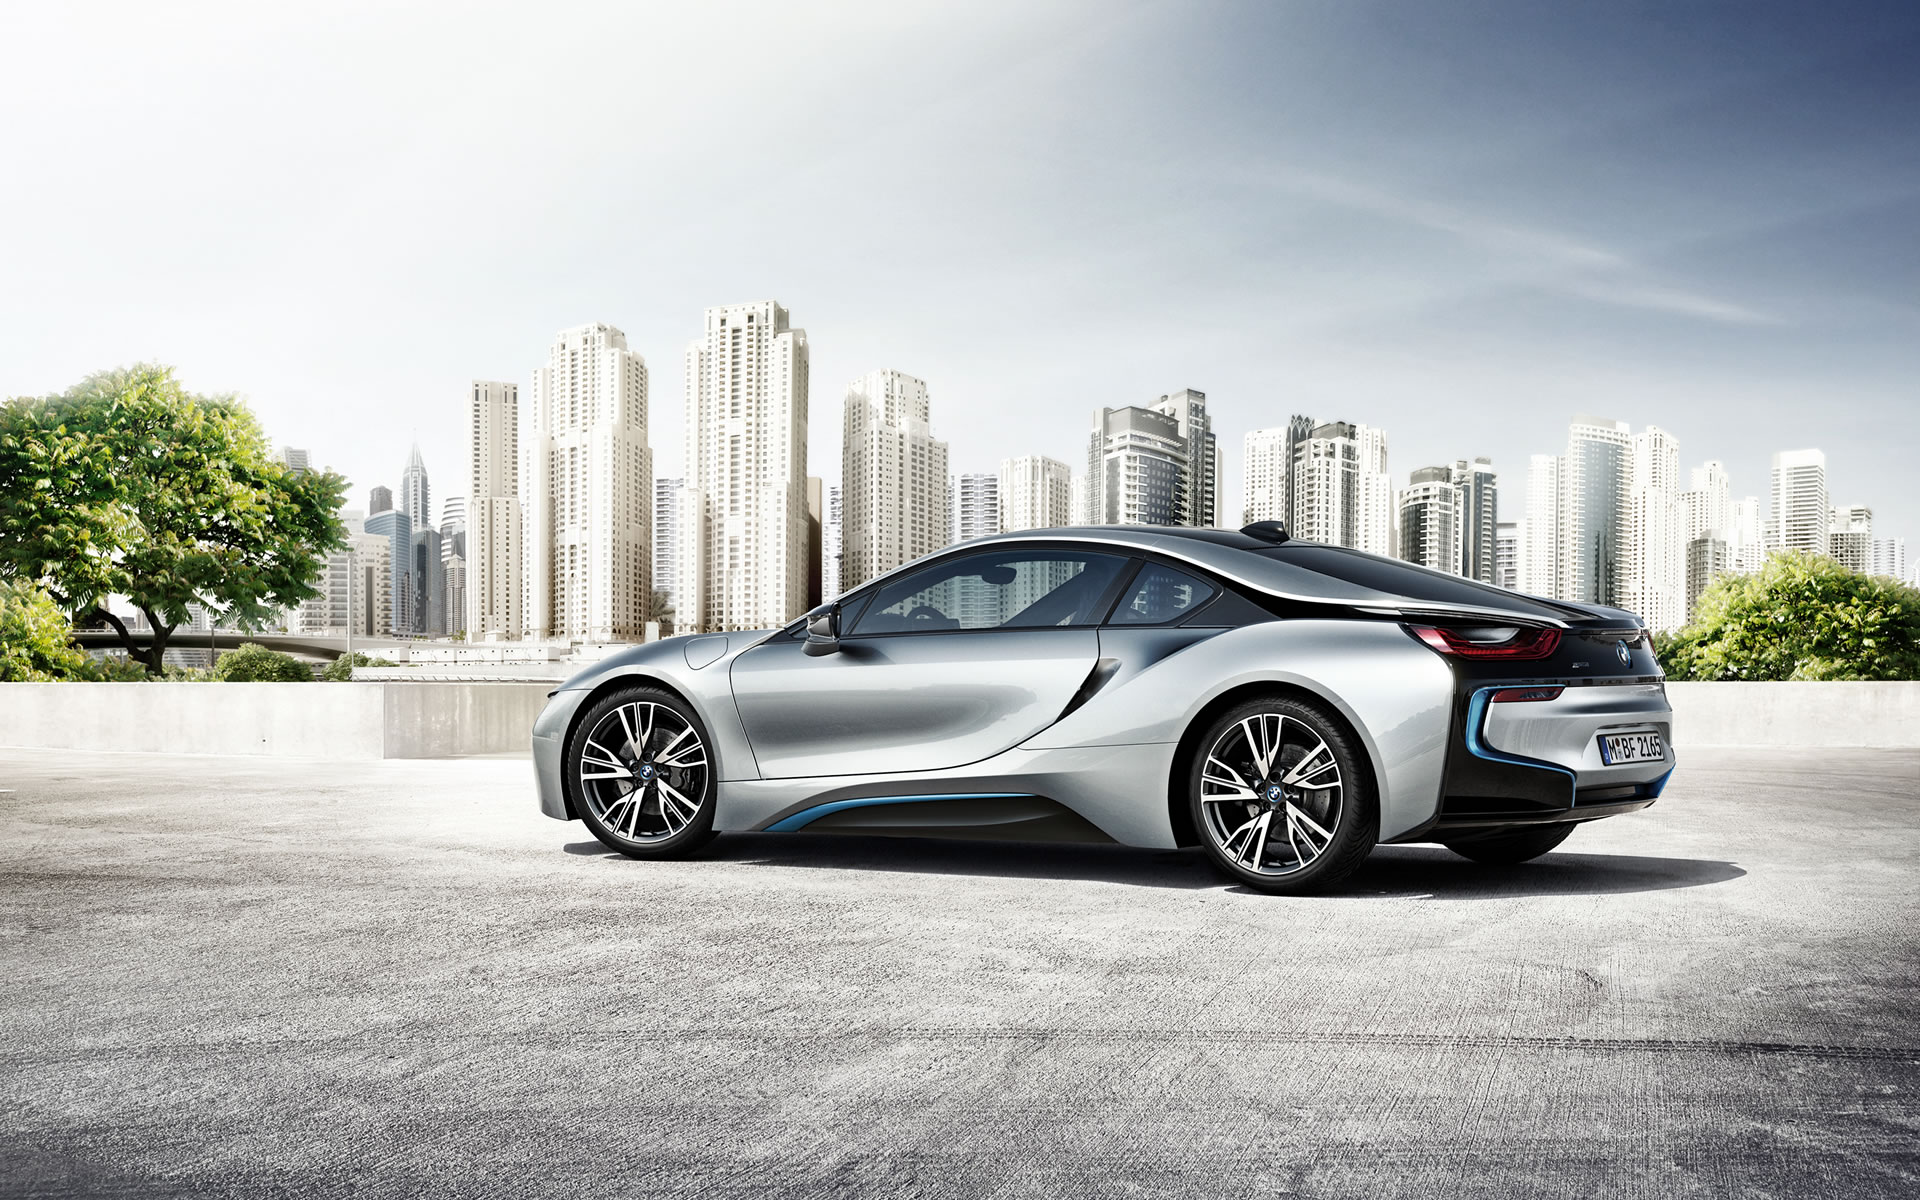 2015 BMW i8 Wallpaper - 1920 x 1200